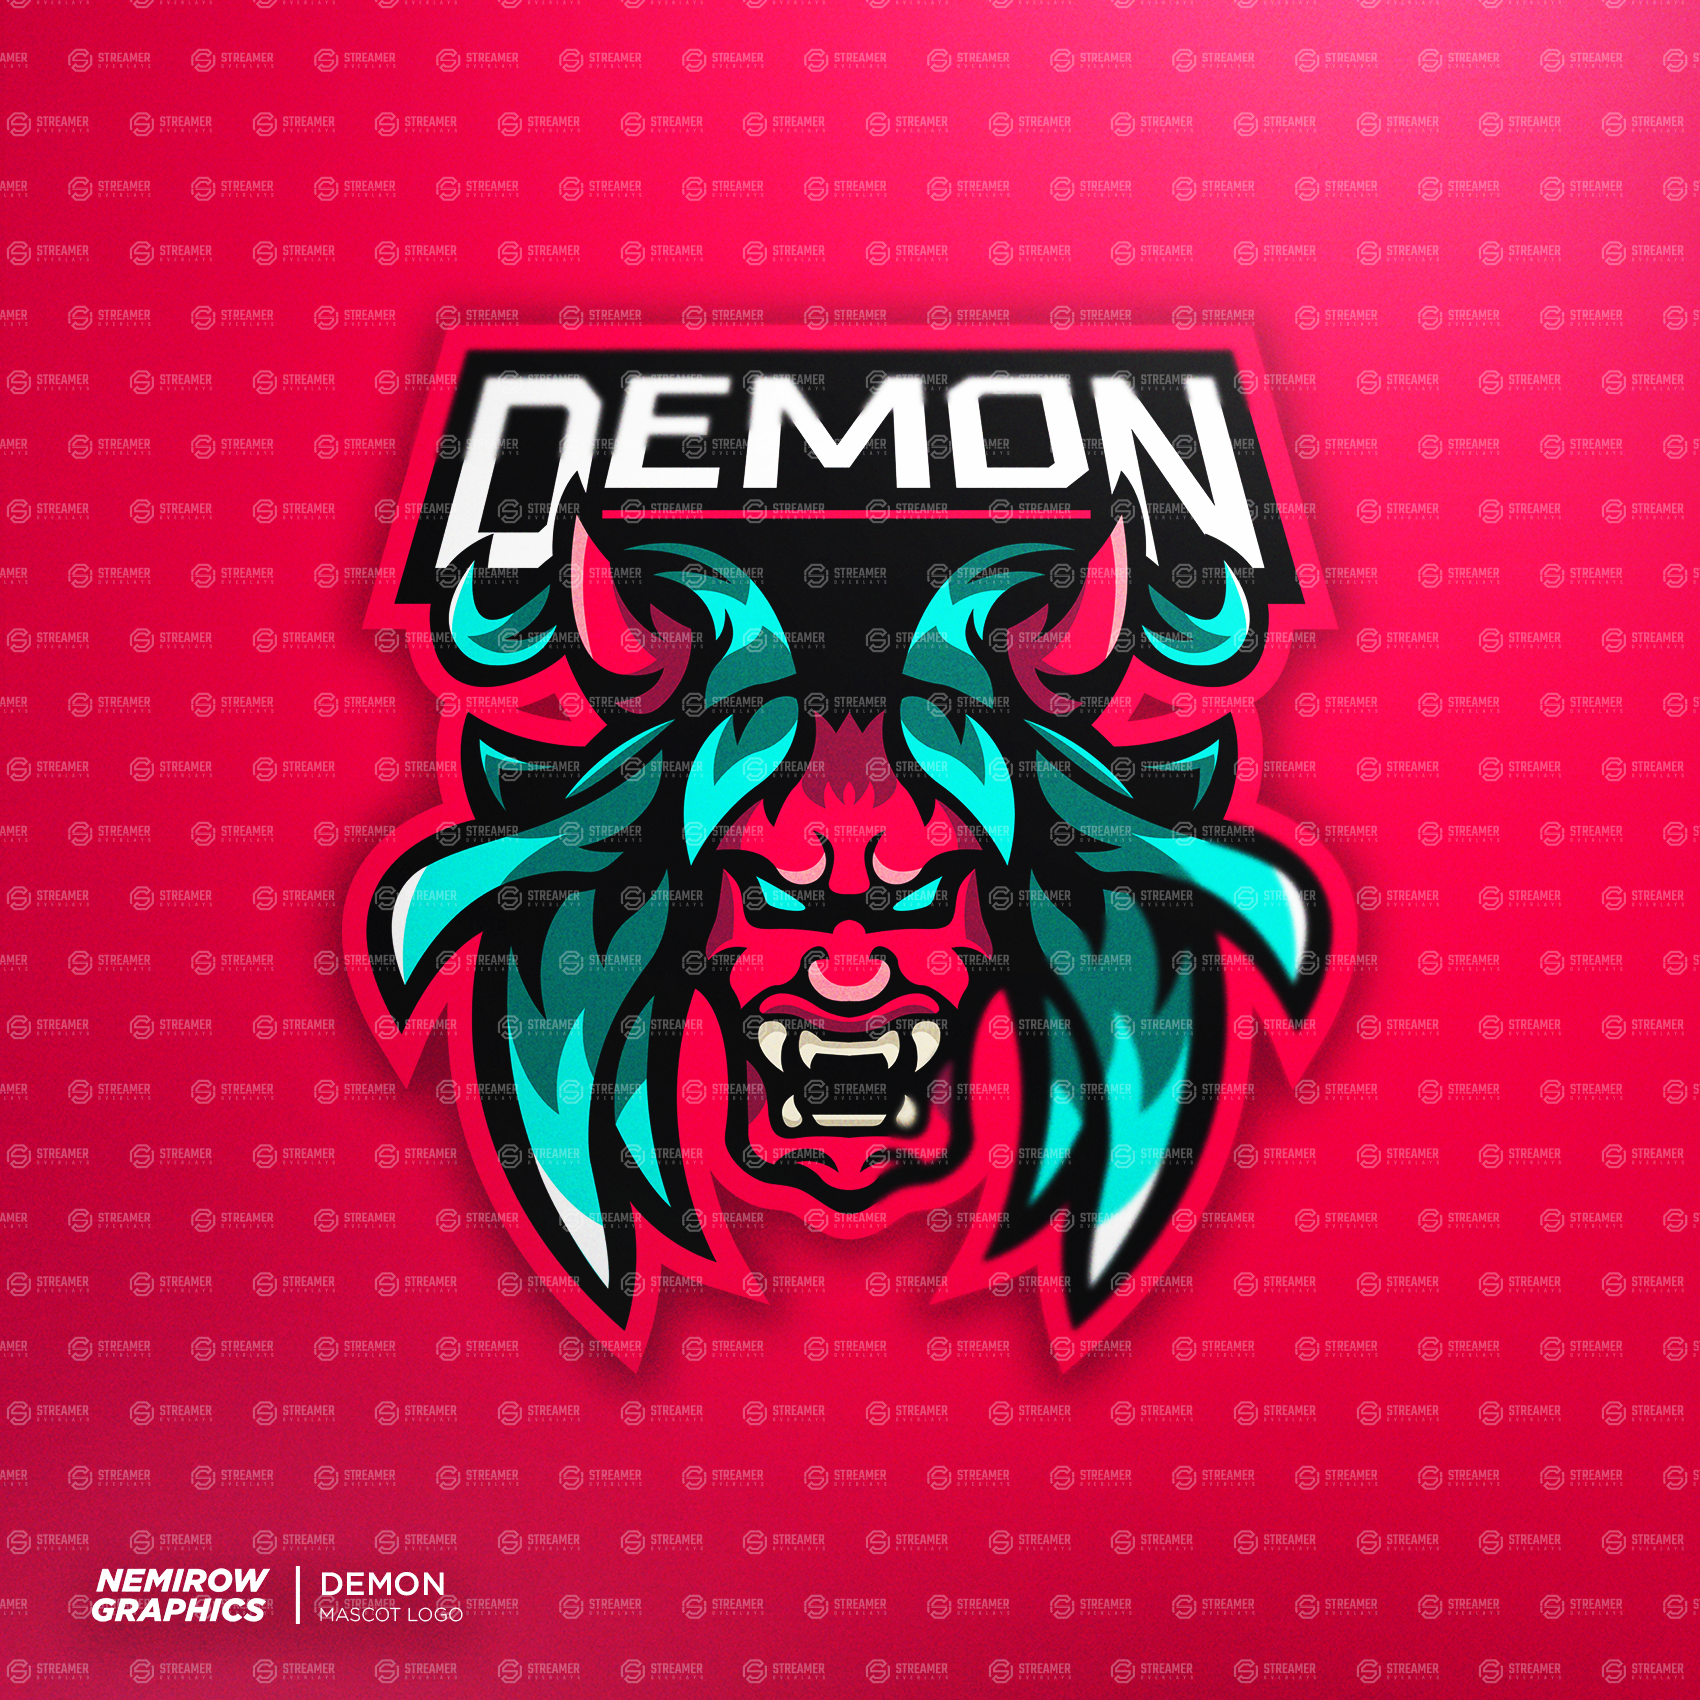 demon mascot logo for sale Streamer overlays premade mascot esports logos for sale